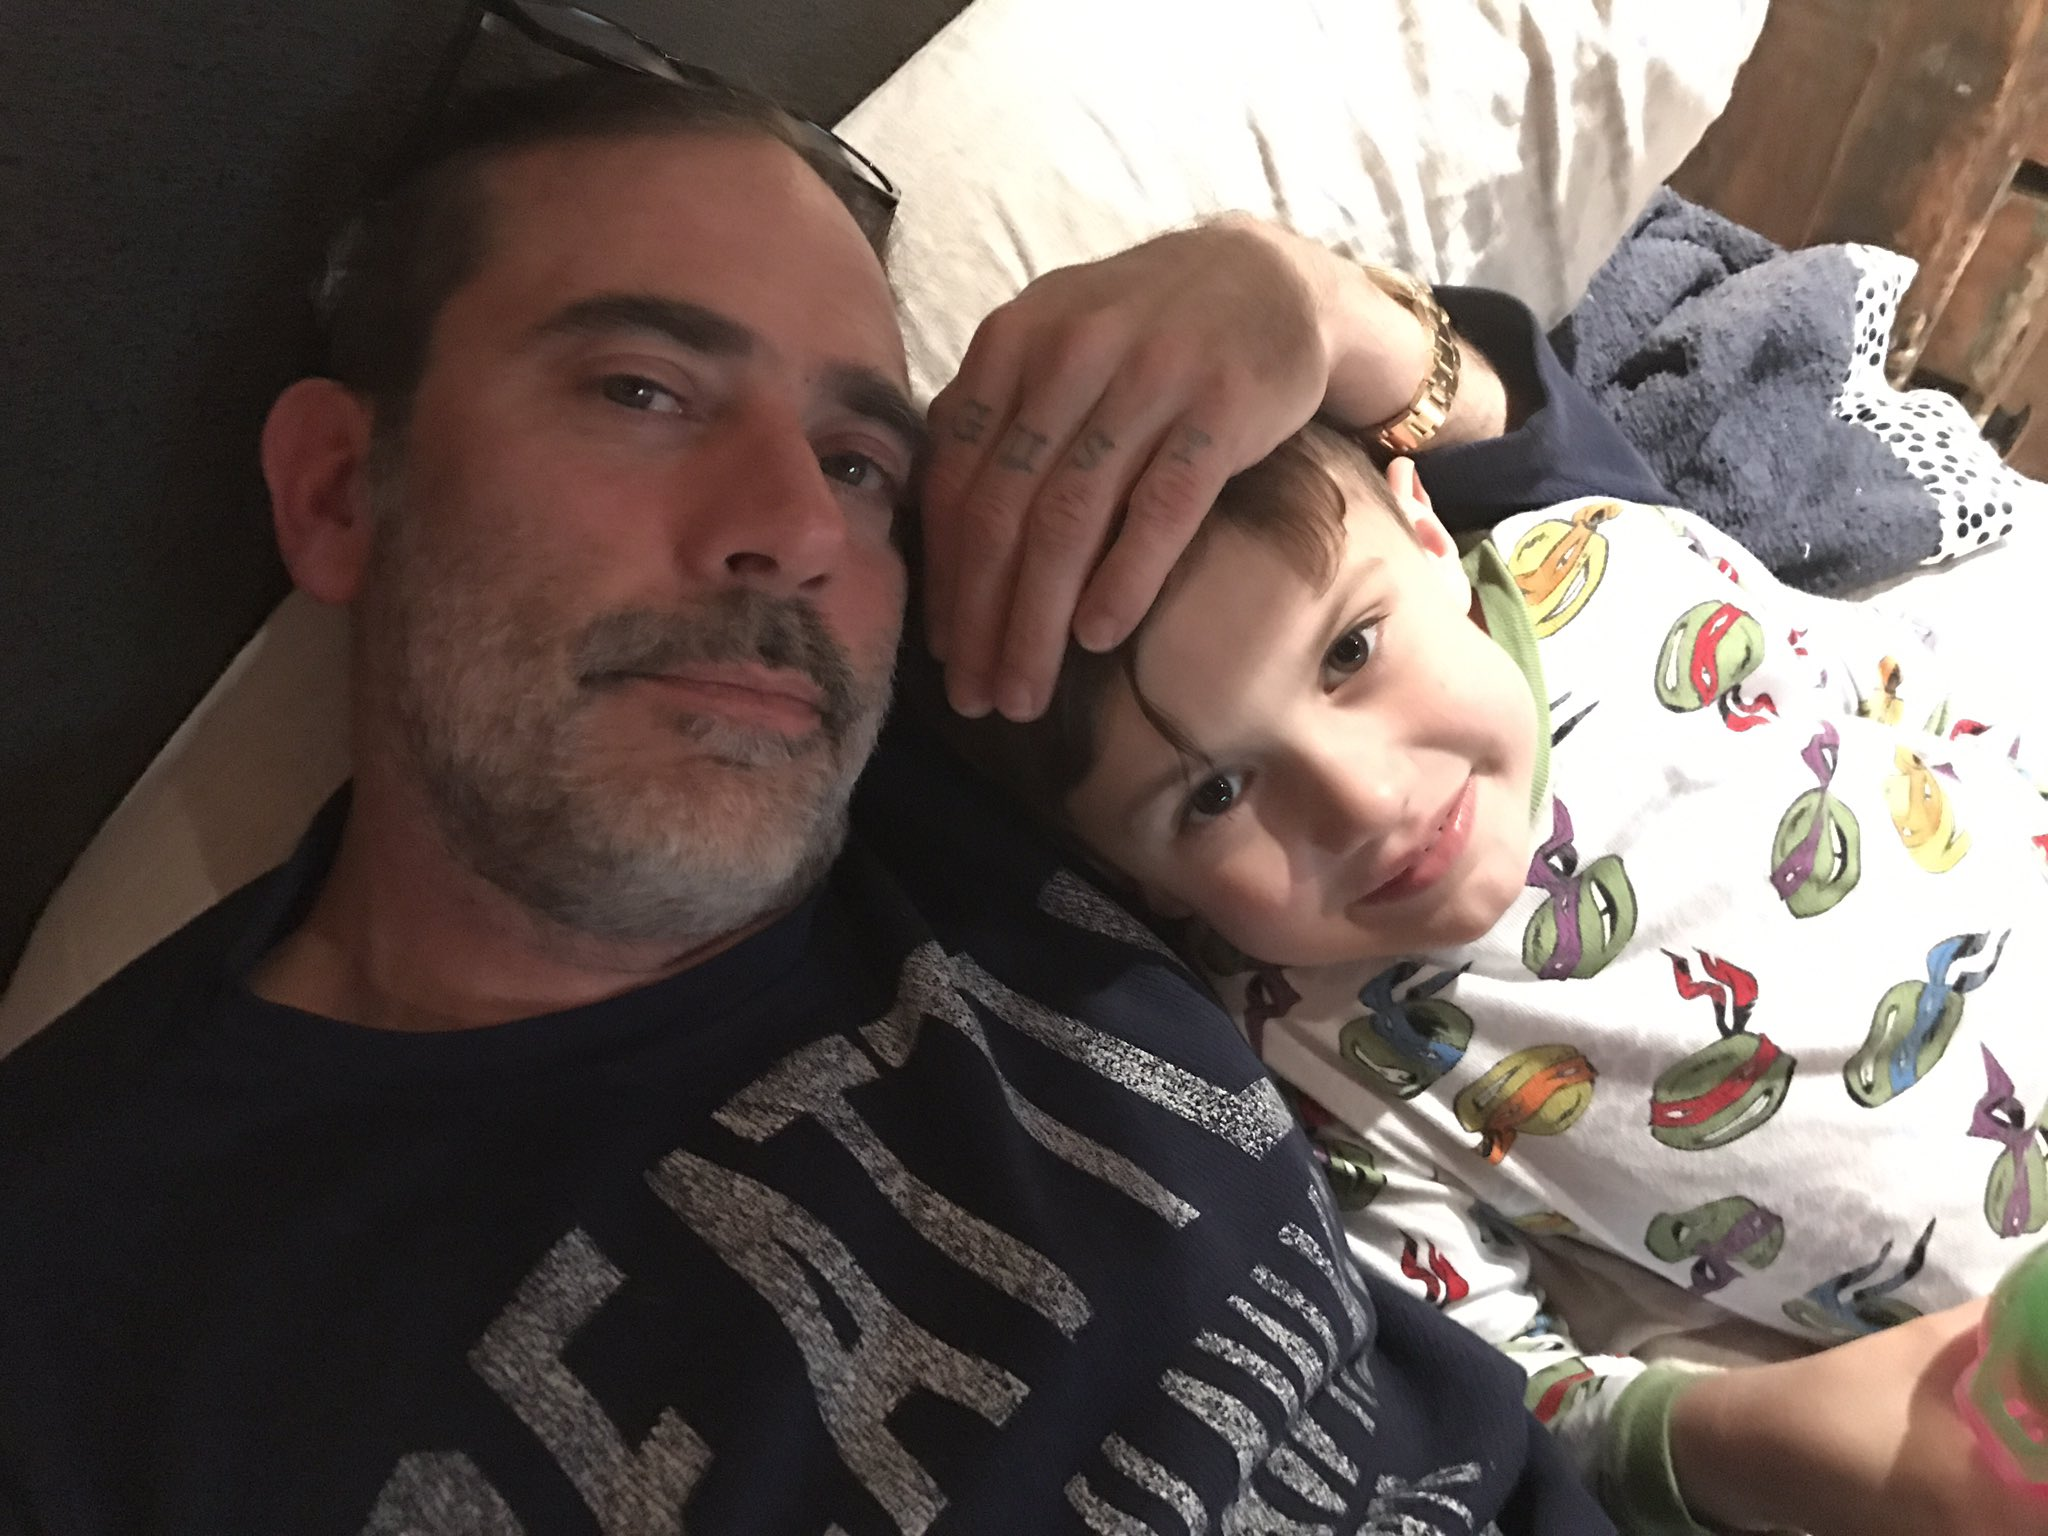 Hilarie Burton On Twitter Quot Happy Fathers Day To Our Hero Jdmorgan Love Gus Hil And All The